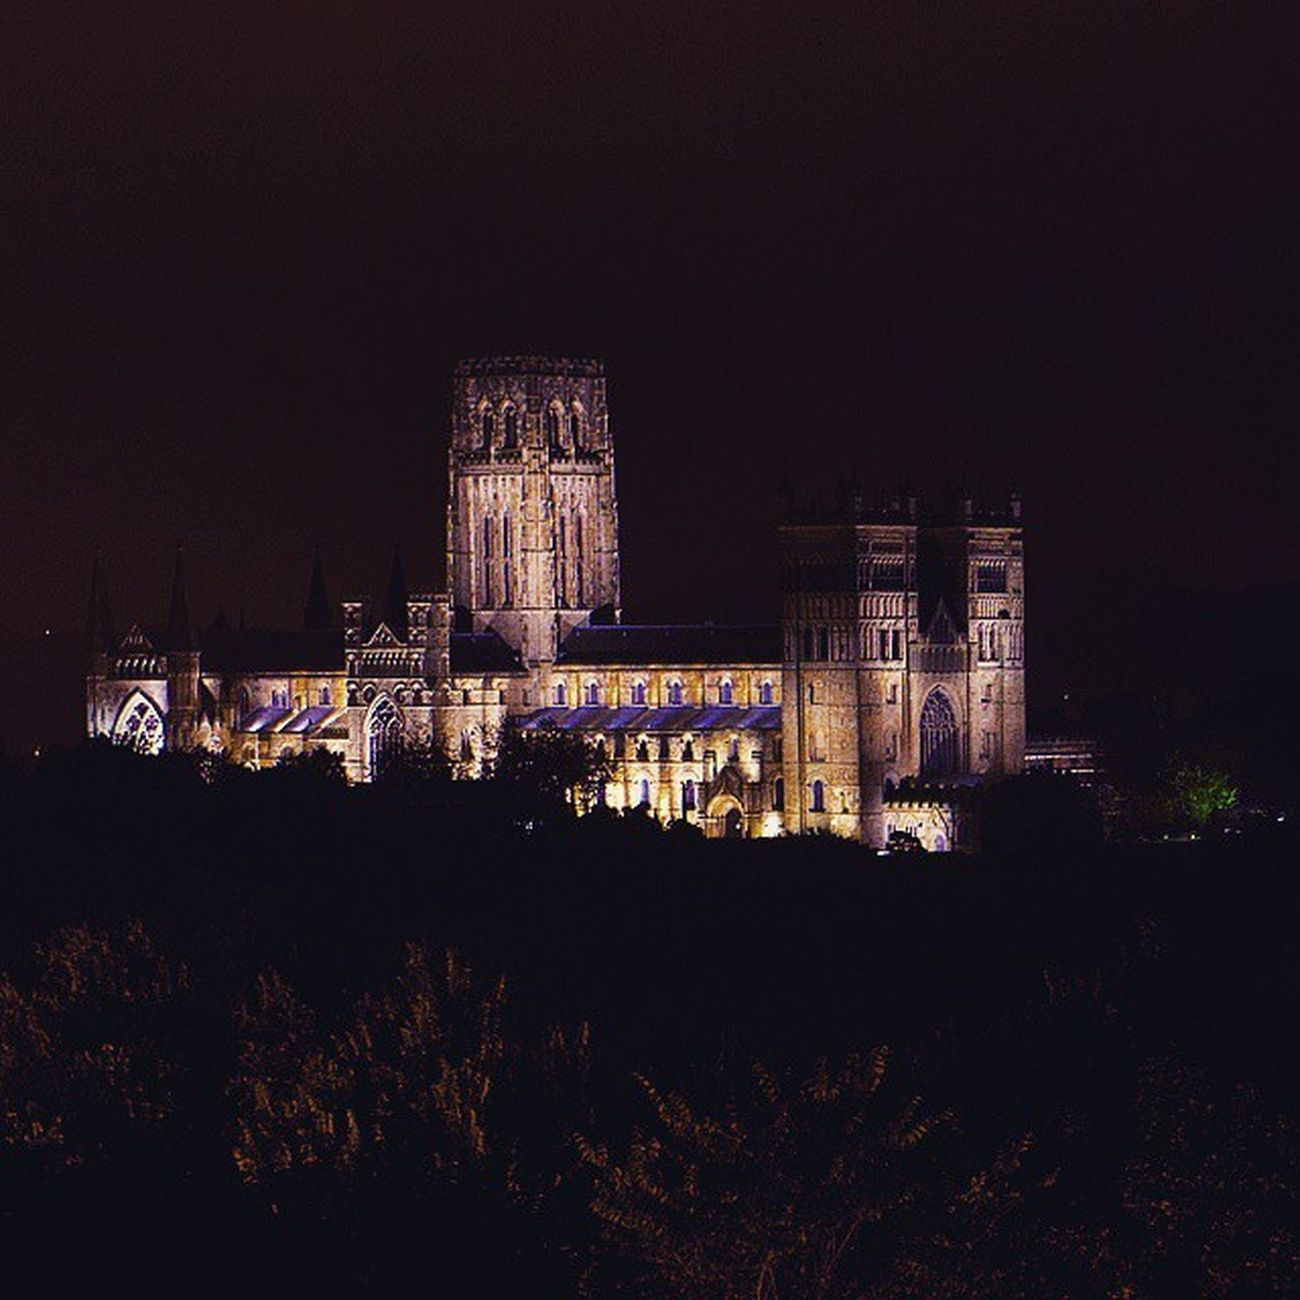 Night shot of DurhamCathedral